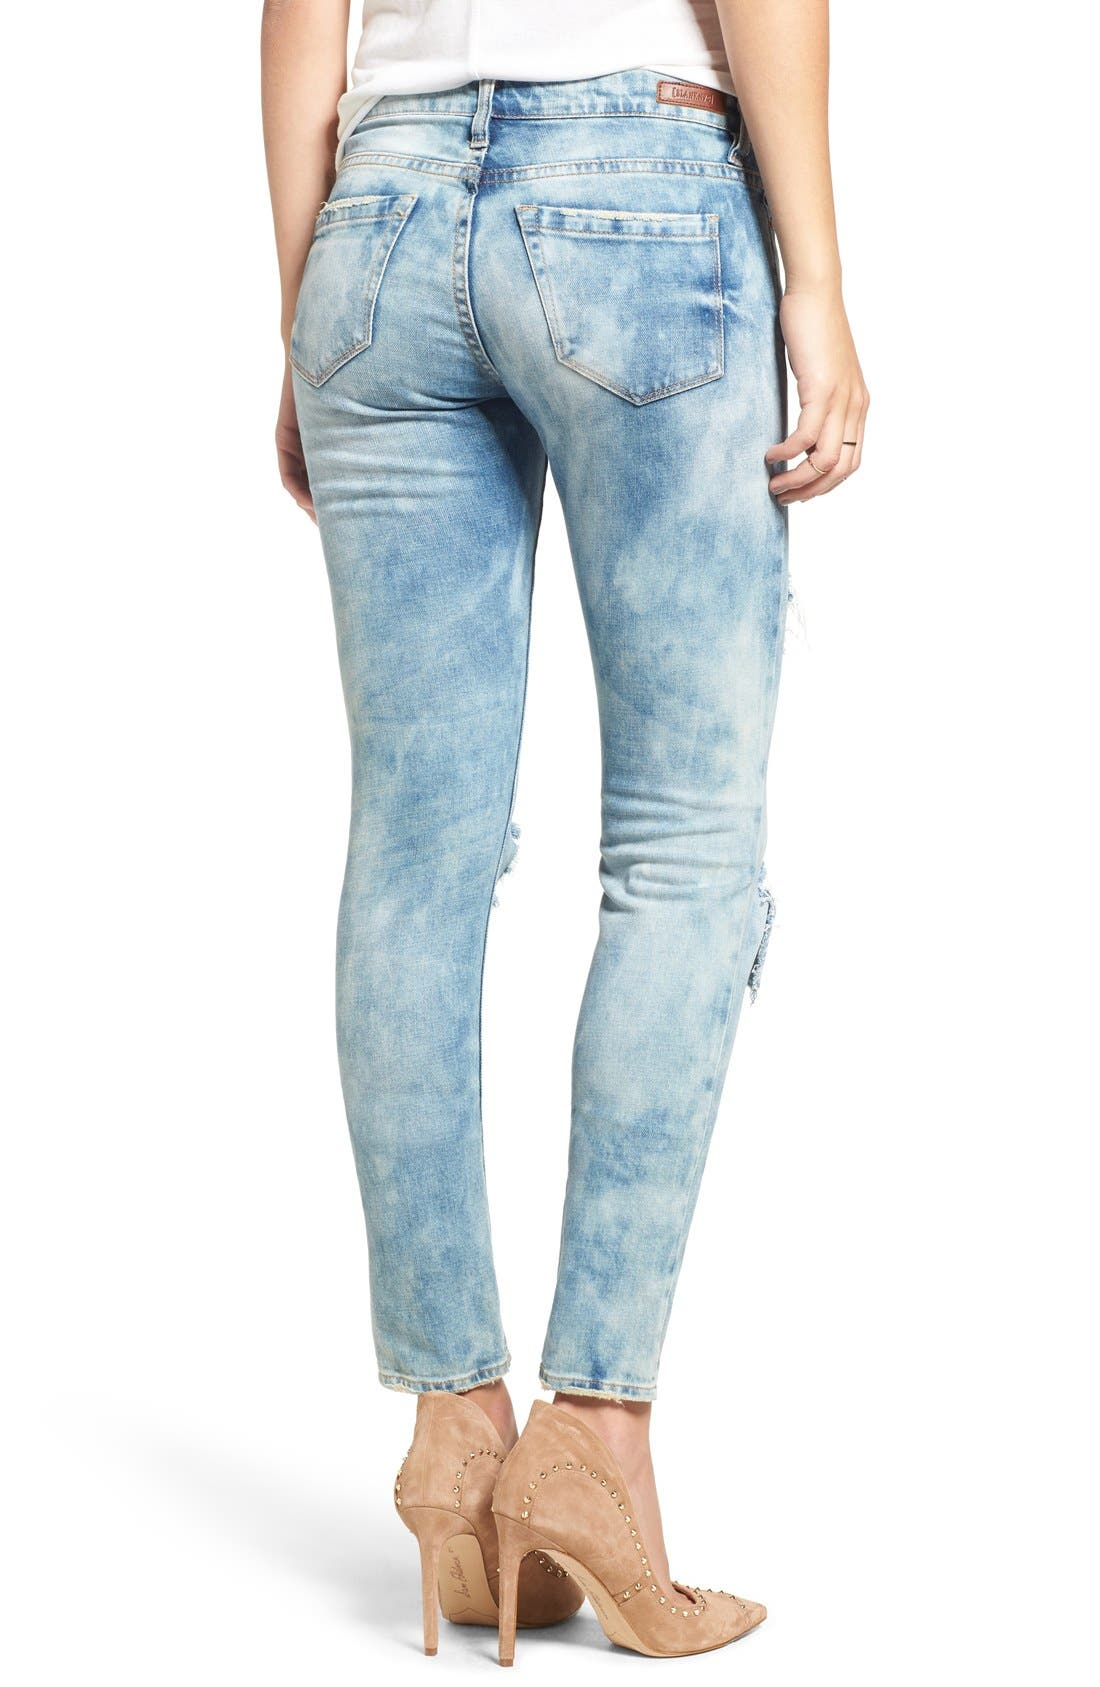 Alternate Image 3  - BLANKNYC Good Vibes Distressed Skinny Jeans (Medium Wash Blue)